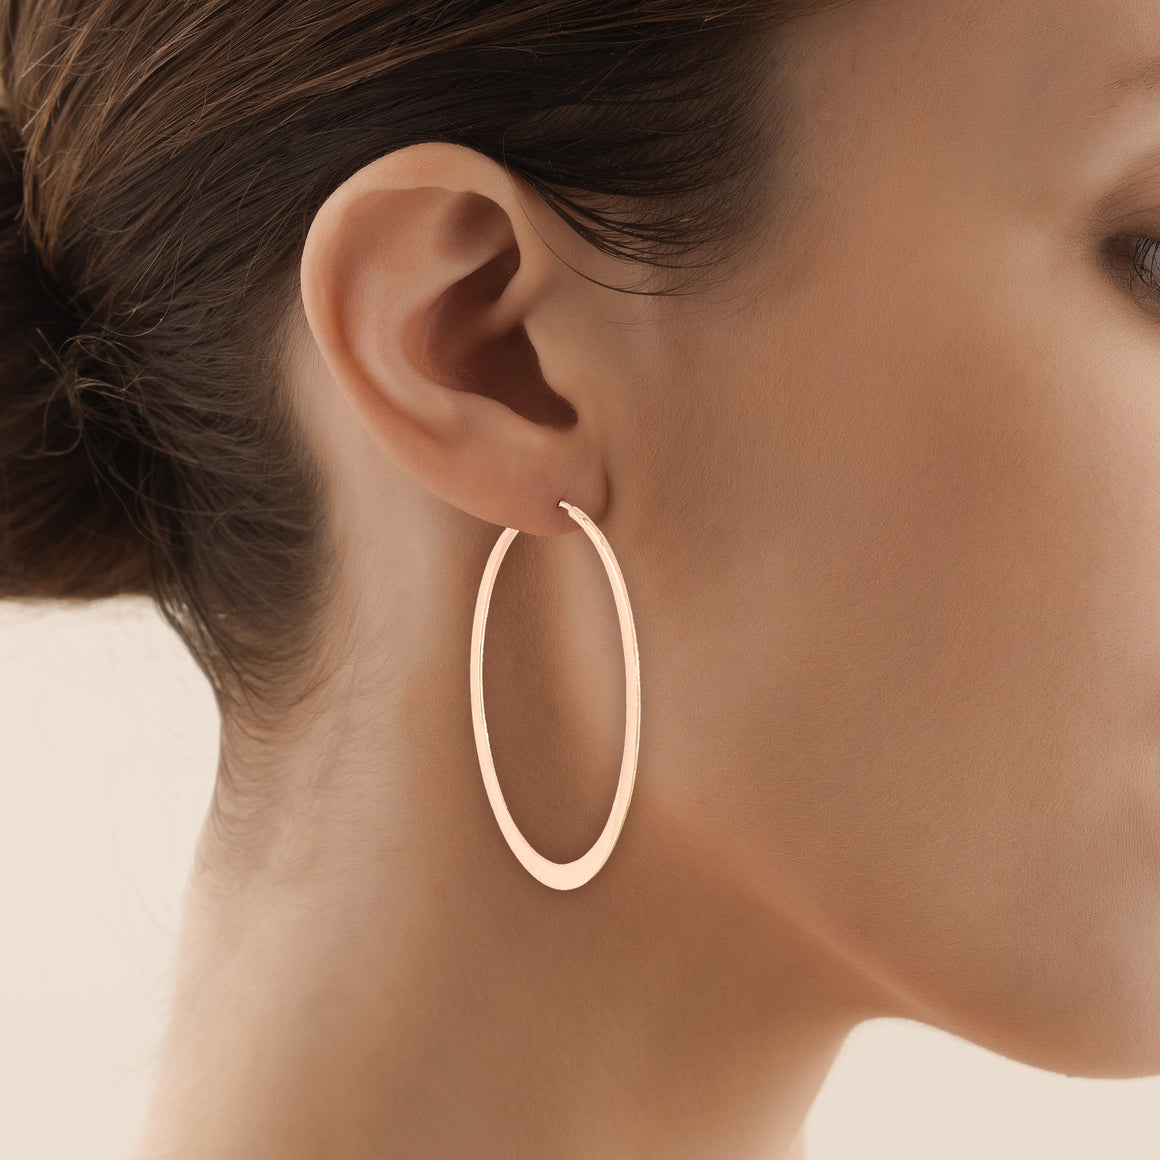 Endless Hoop Earrings in Rose Gold - 2 inch